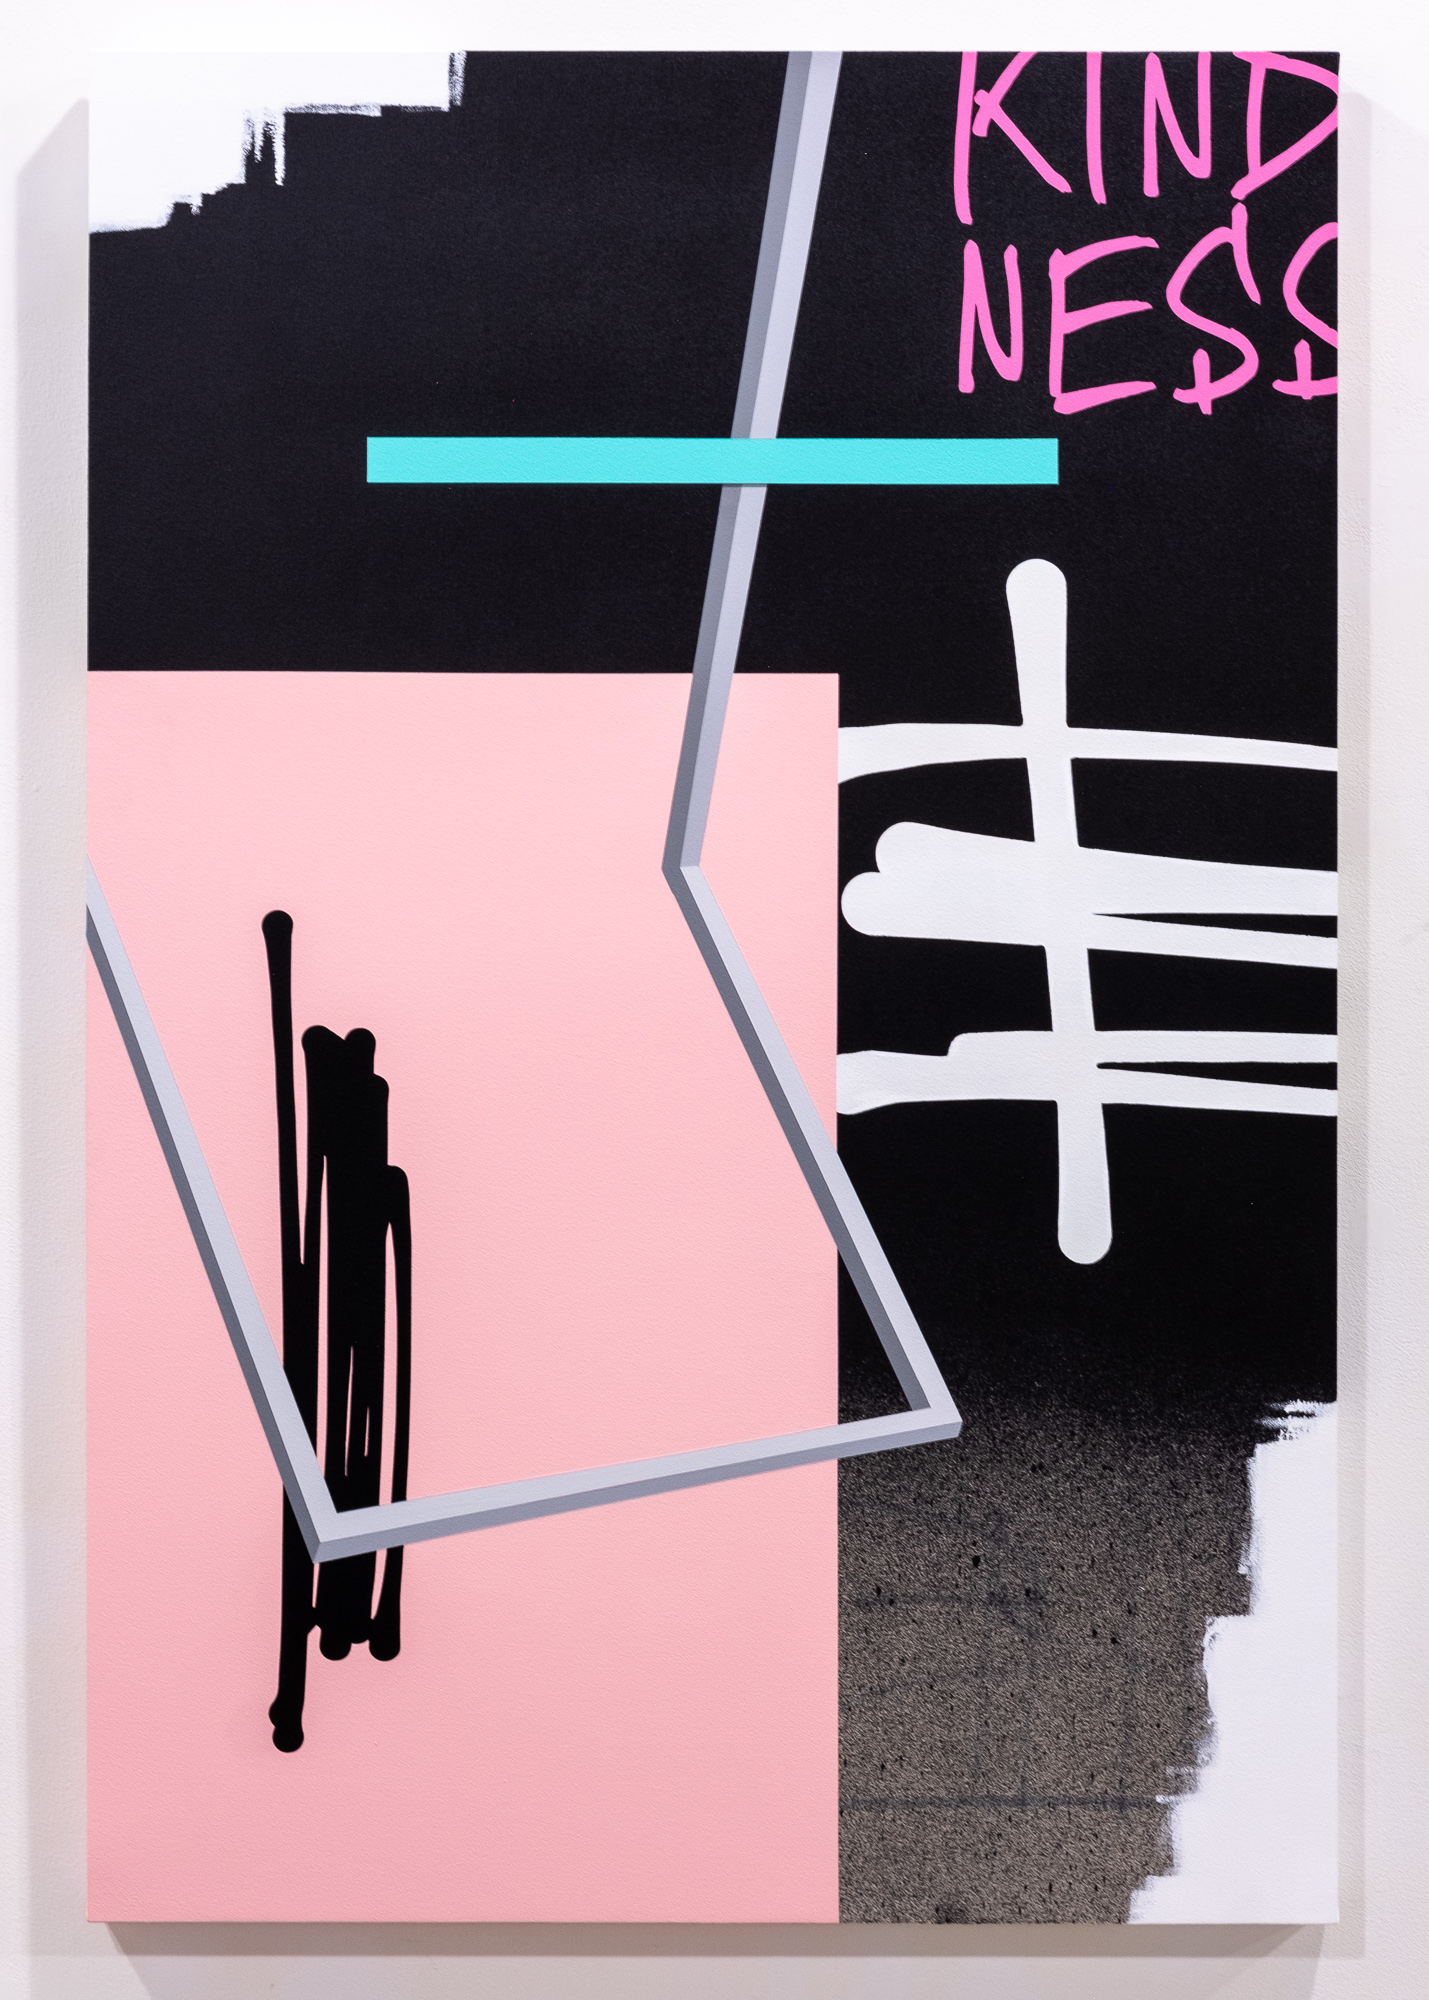 Jeremy Brown & Adam Podber  One Word  acrylic, aerosol, and ink on canvas  40 x 60 inches JBR 153G